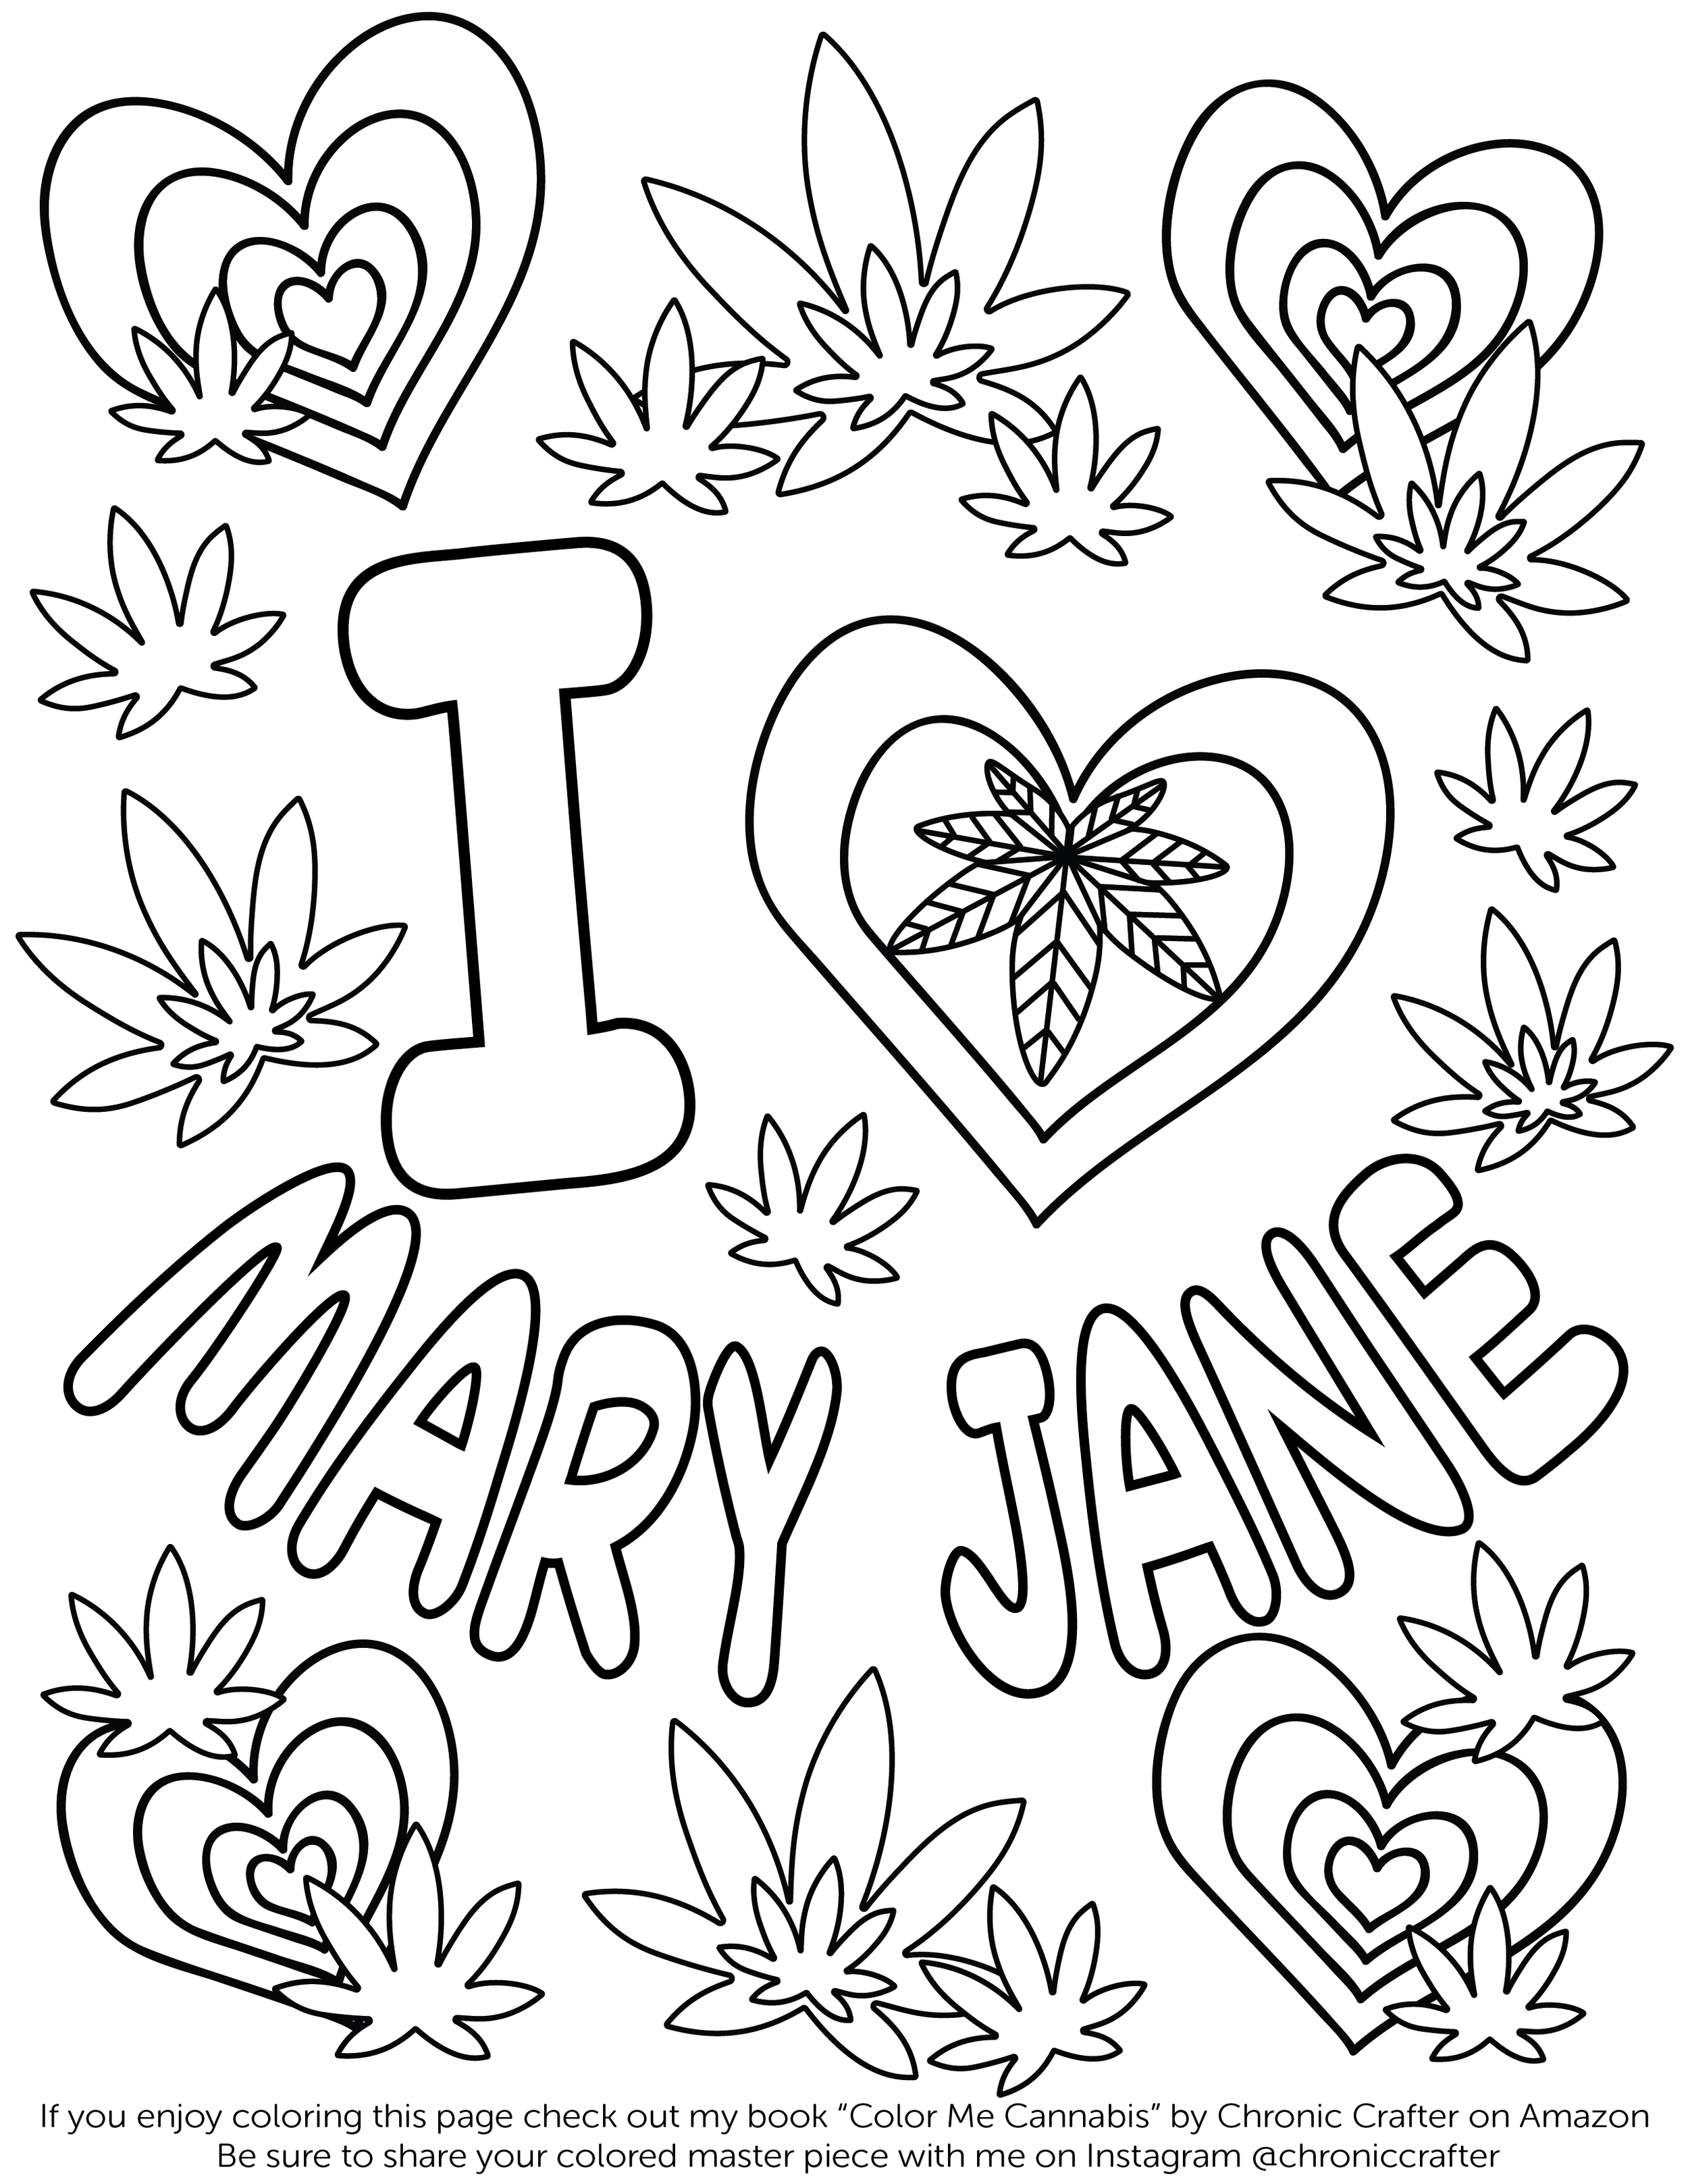 Free Marijuana Coloring Page from Color Me Cannabis